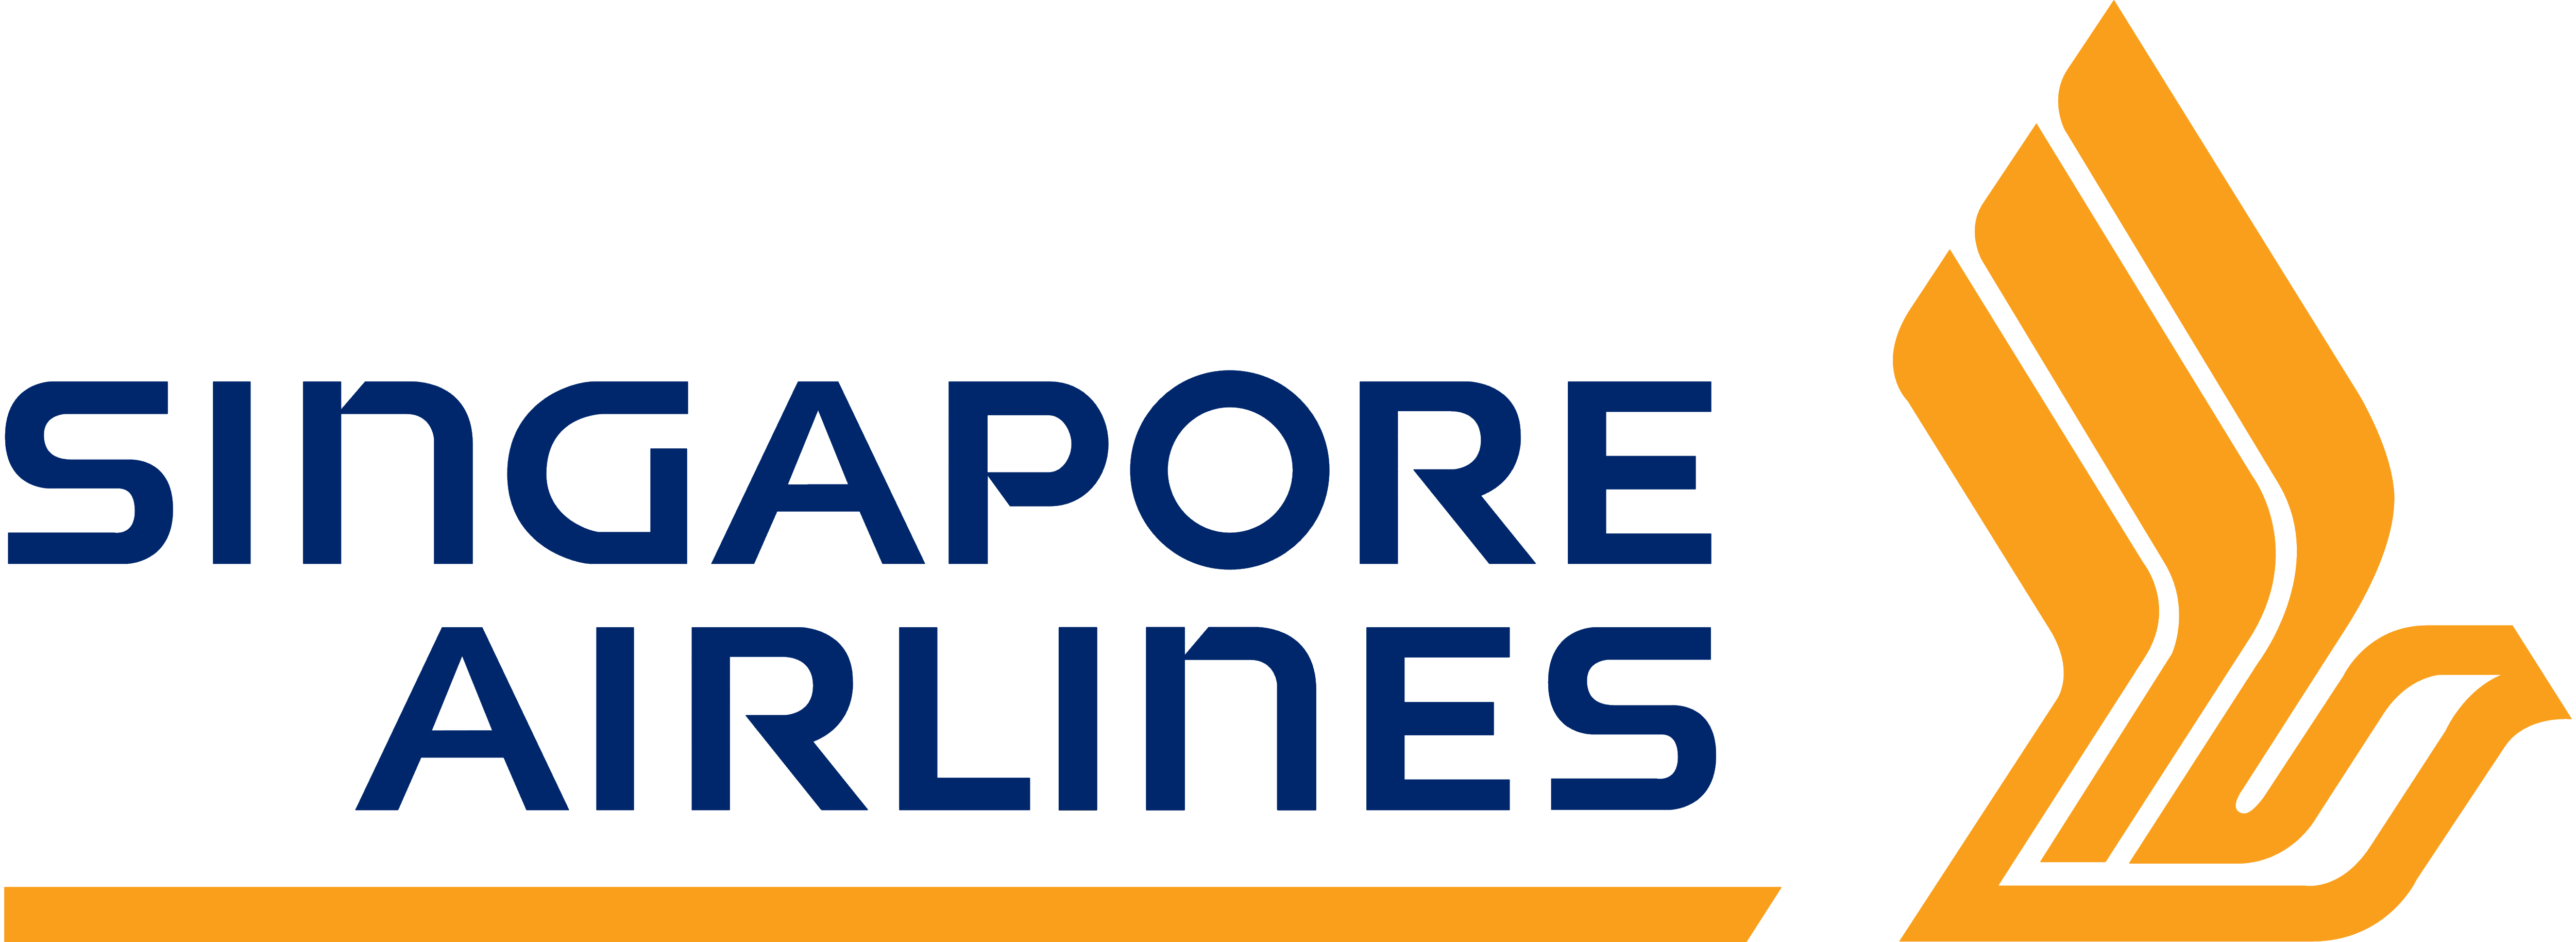 singapore airlines logos download